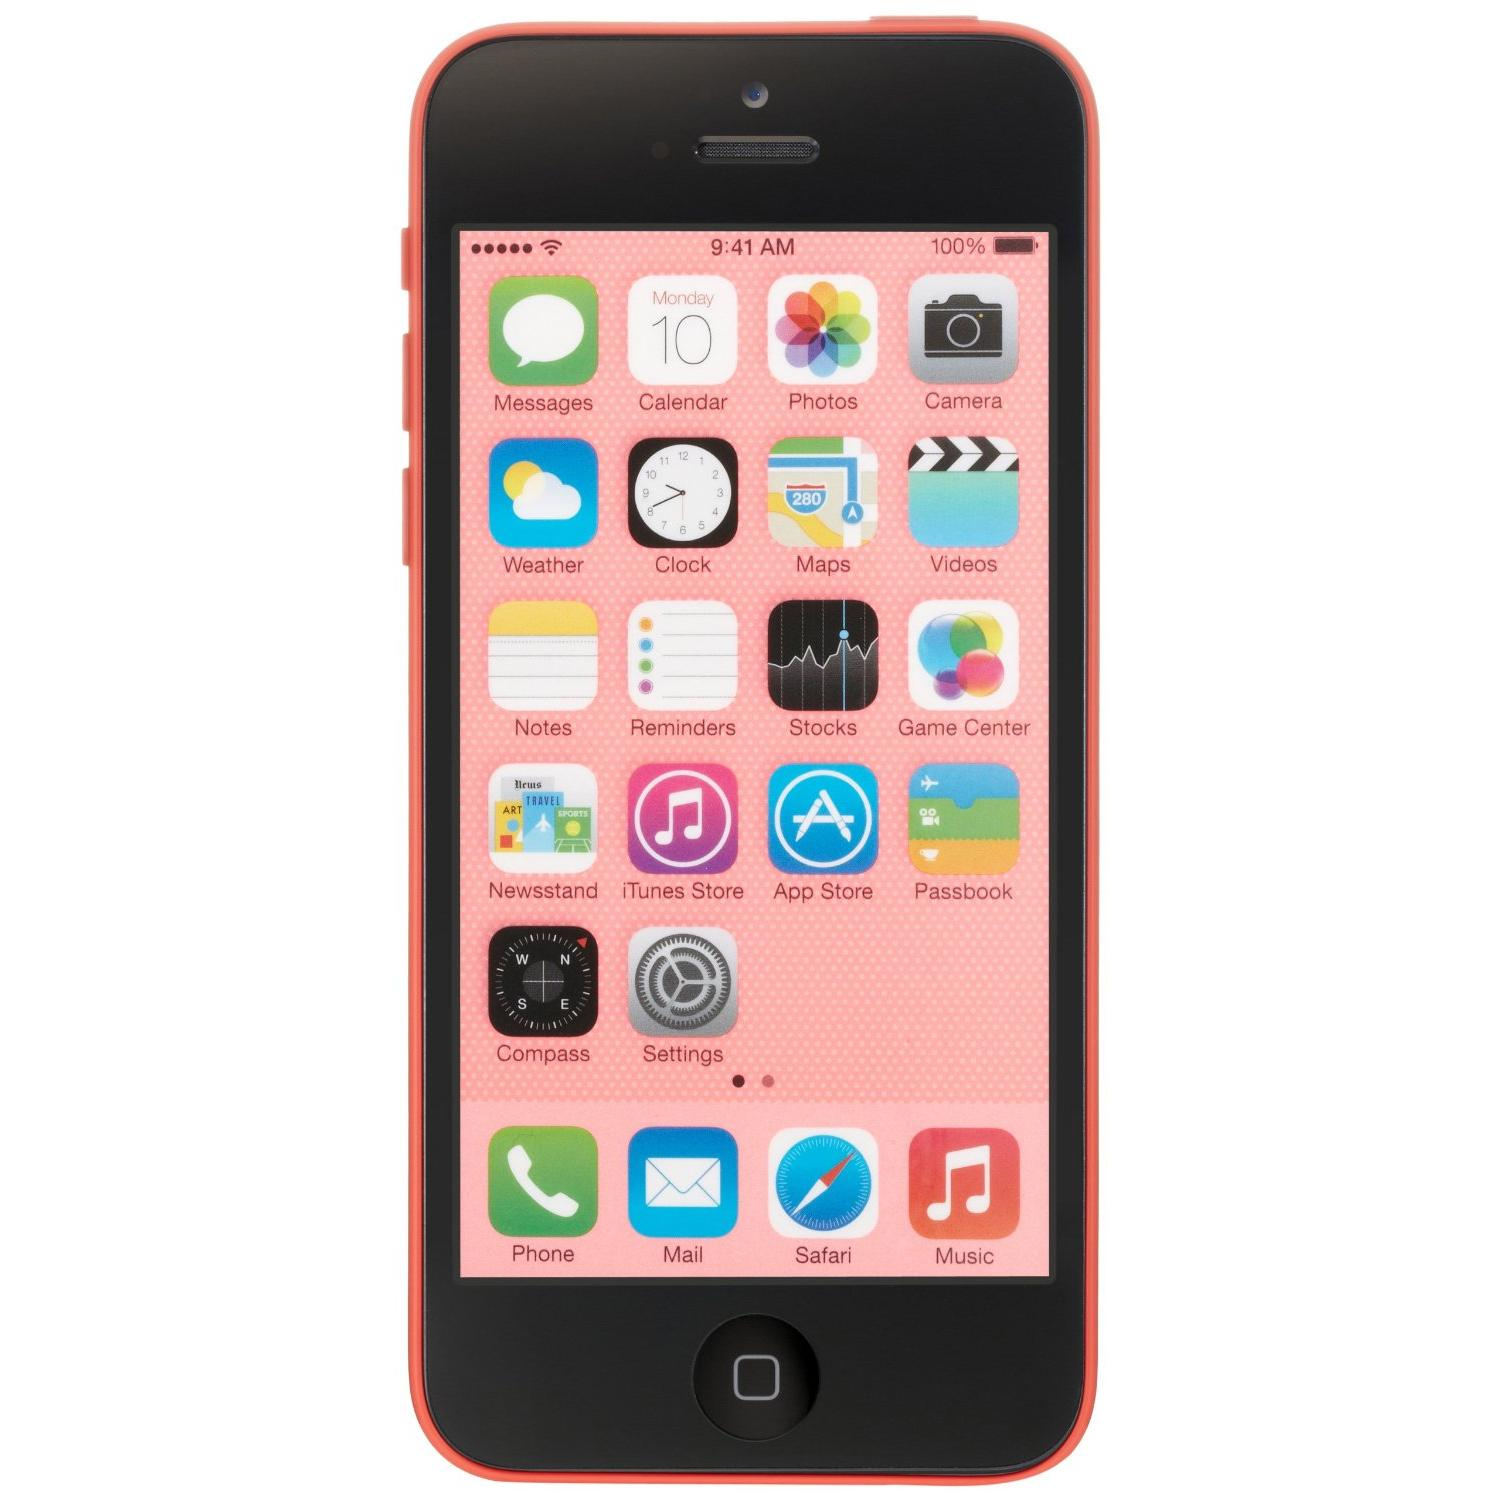 Comprar Iphone 5 32gb Libre Iphone 5c 32 Gb Oro Rosa Libre Reacondicionado Back